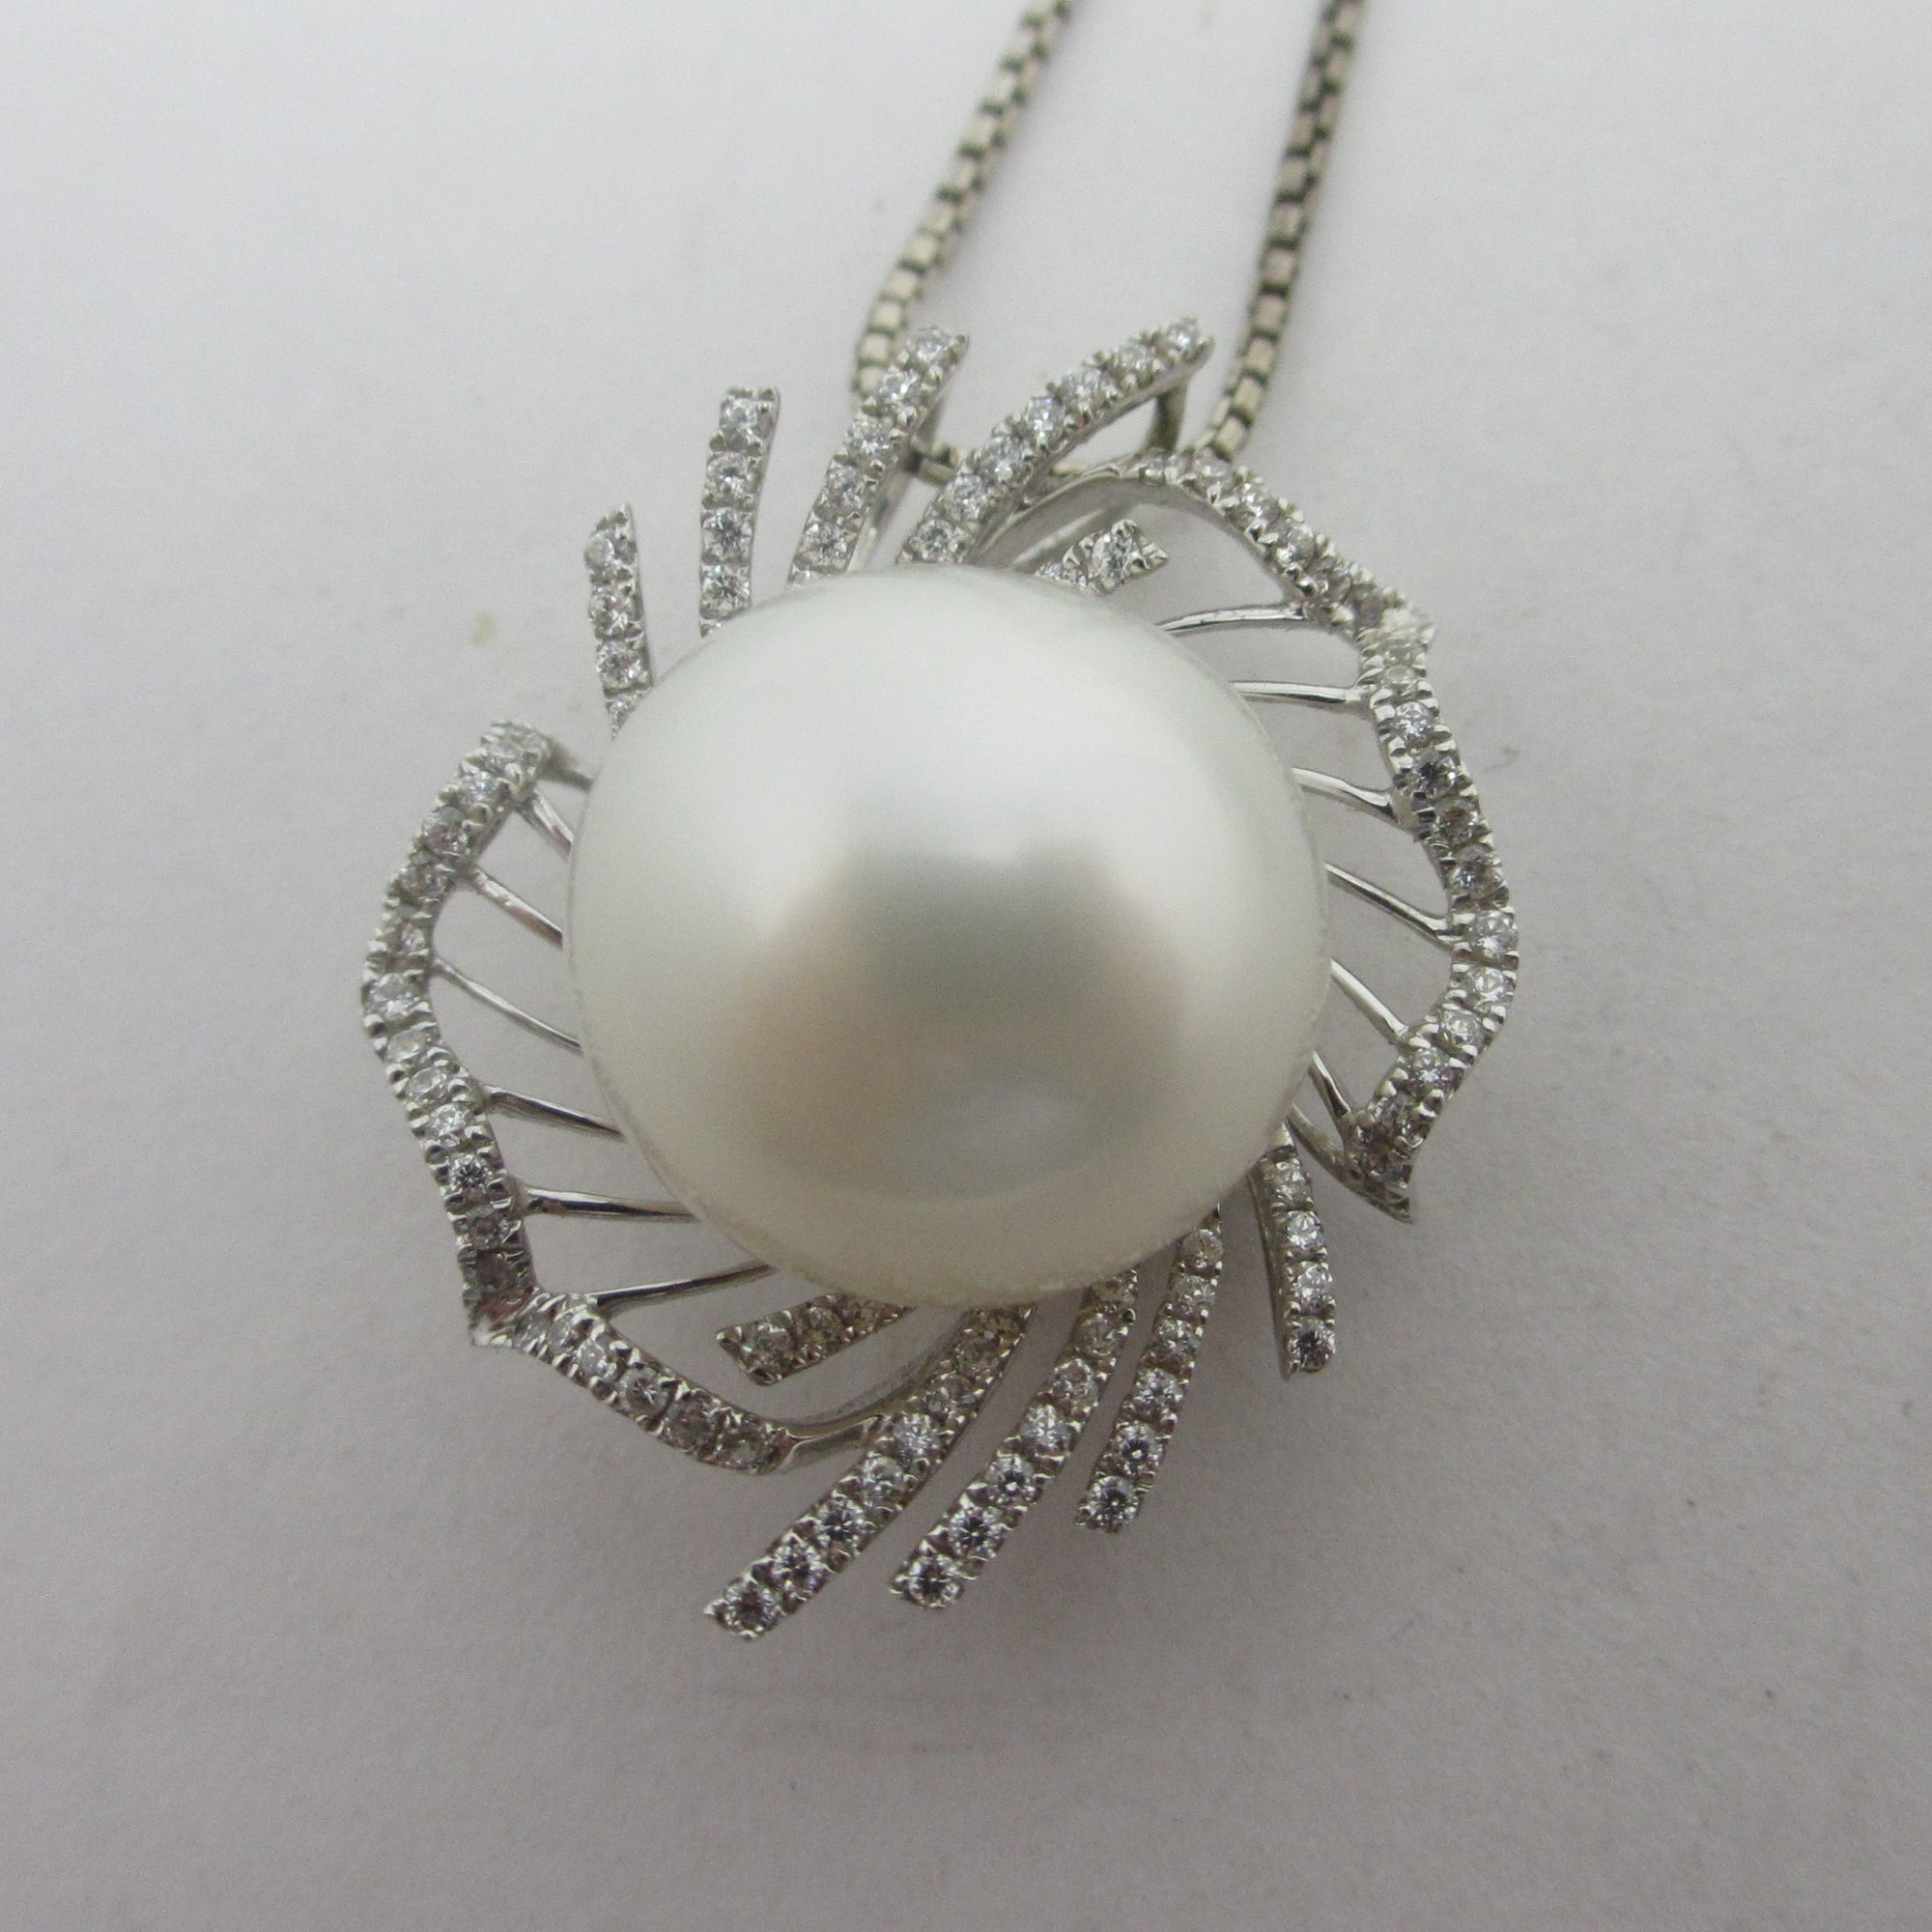 Large South Sea Pearl Diamond 14k White Gold Pendant Necklace Vintage c1980